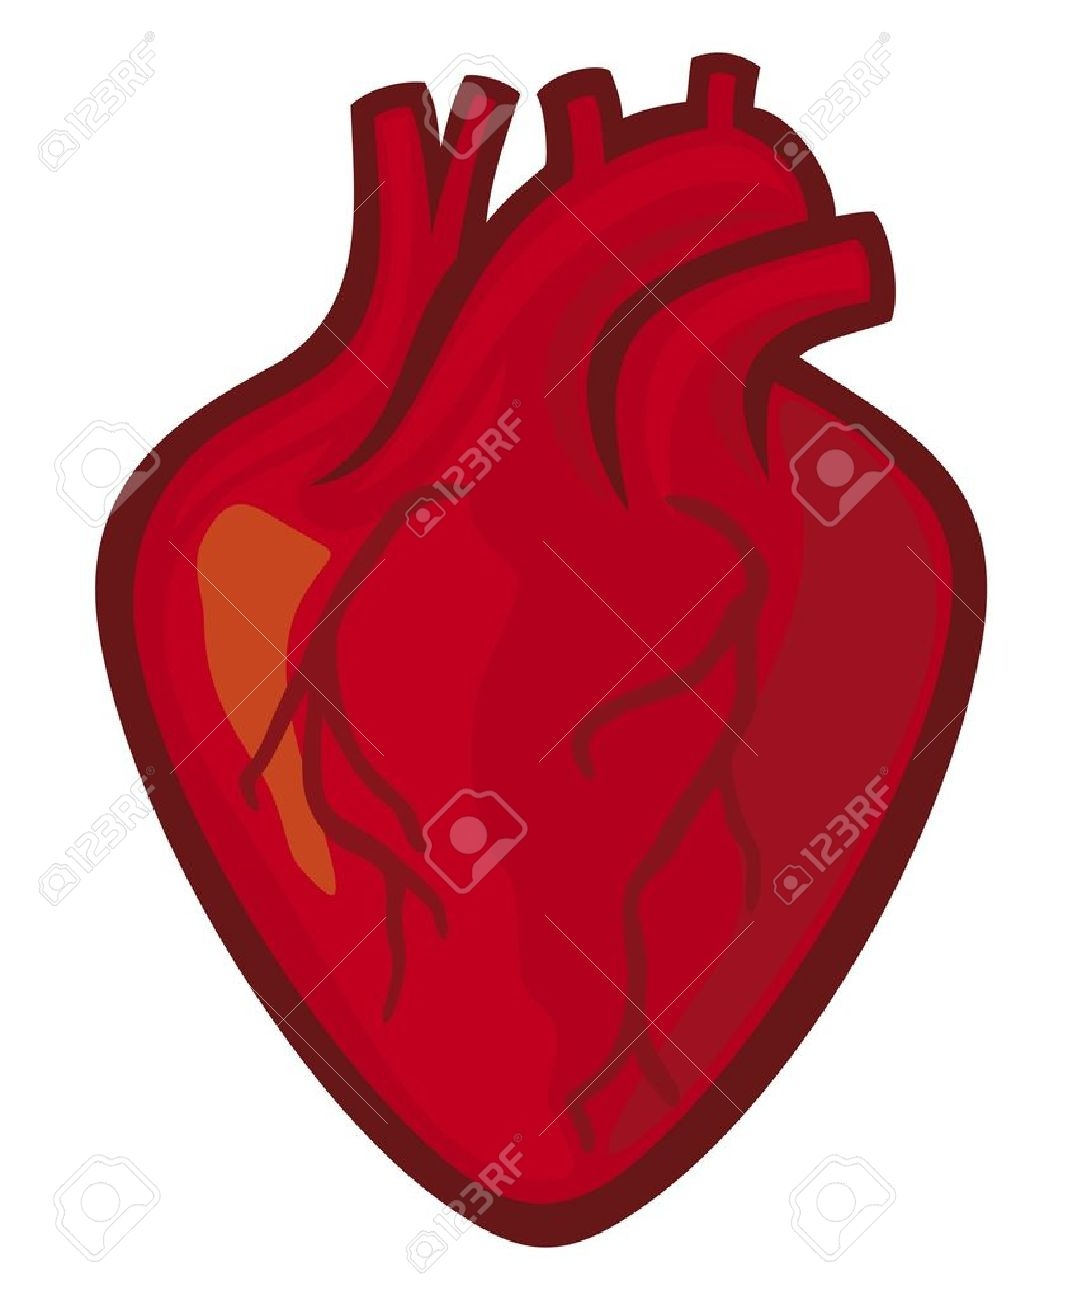 1082x1300 The Best Of Picture Heart Of Human Being Human Anatomy Heart